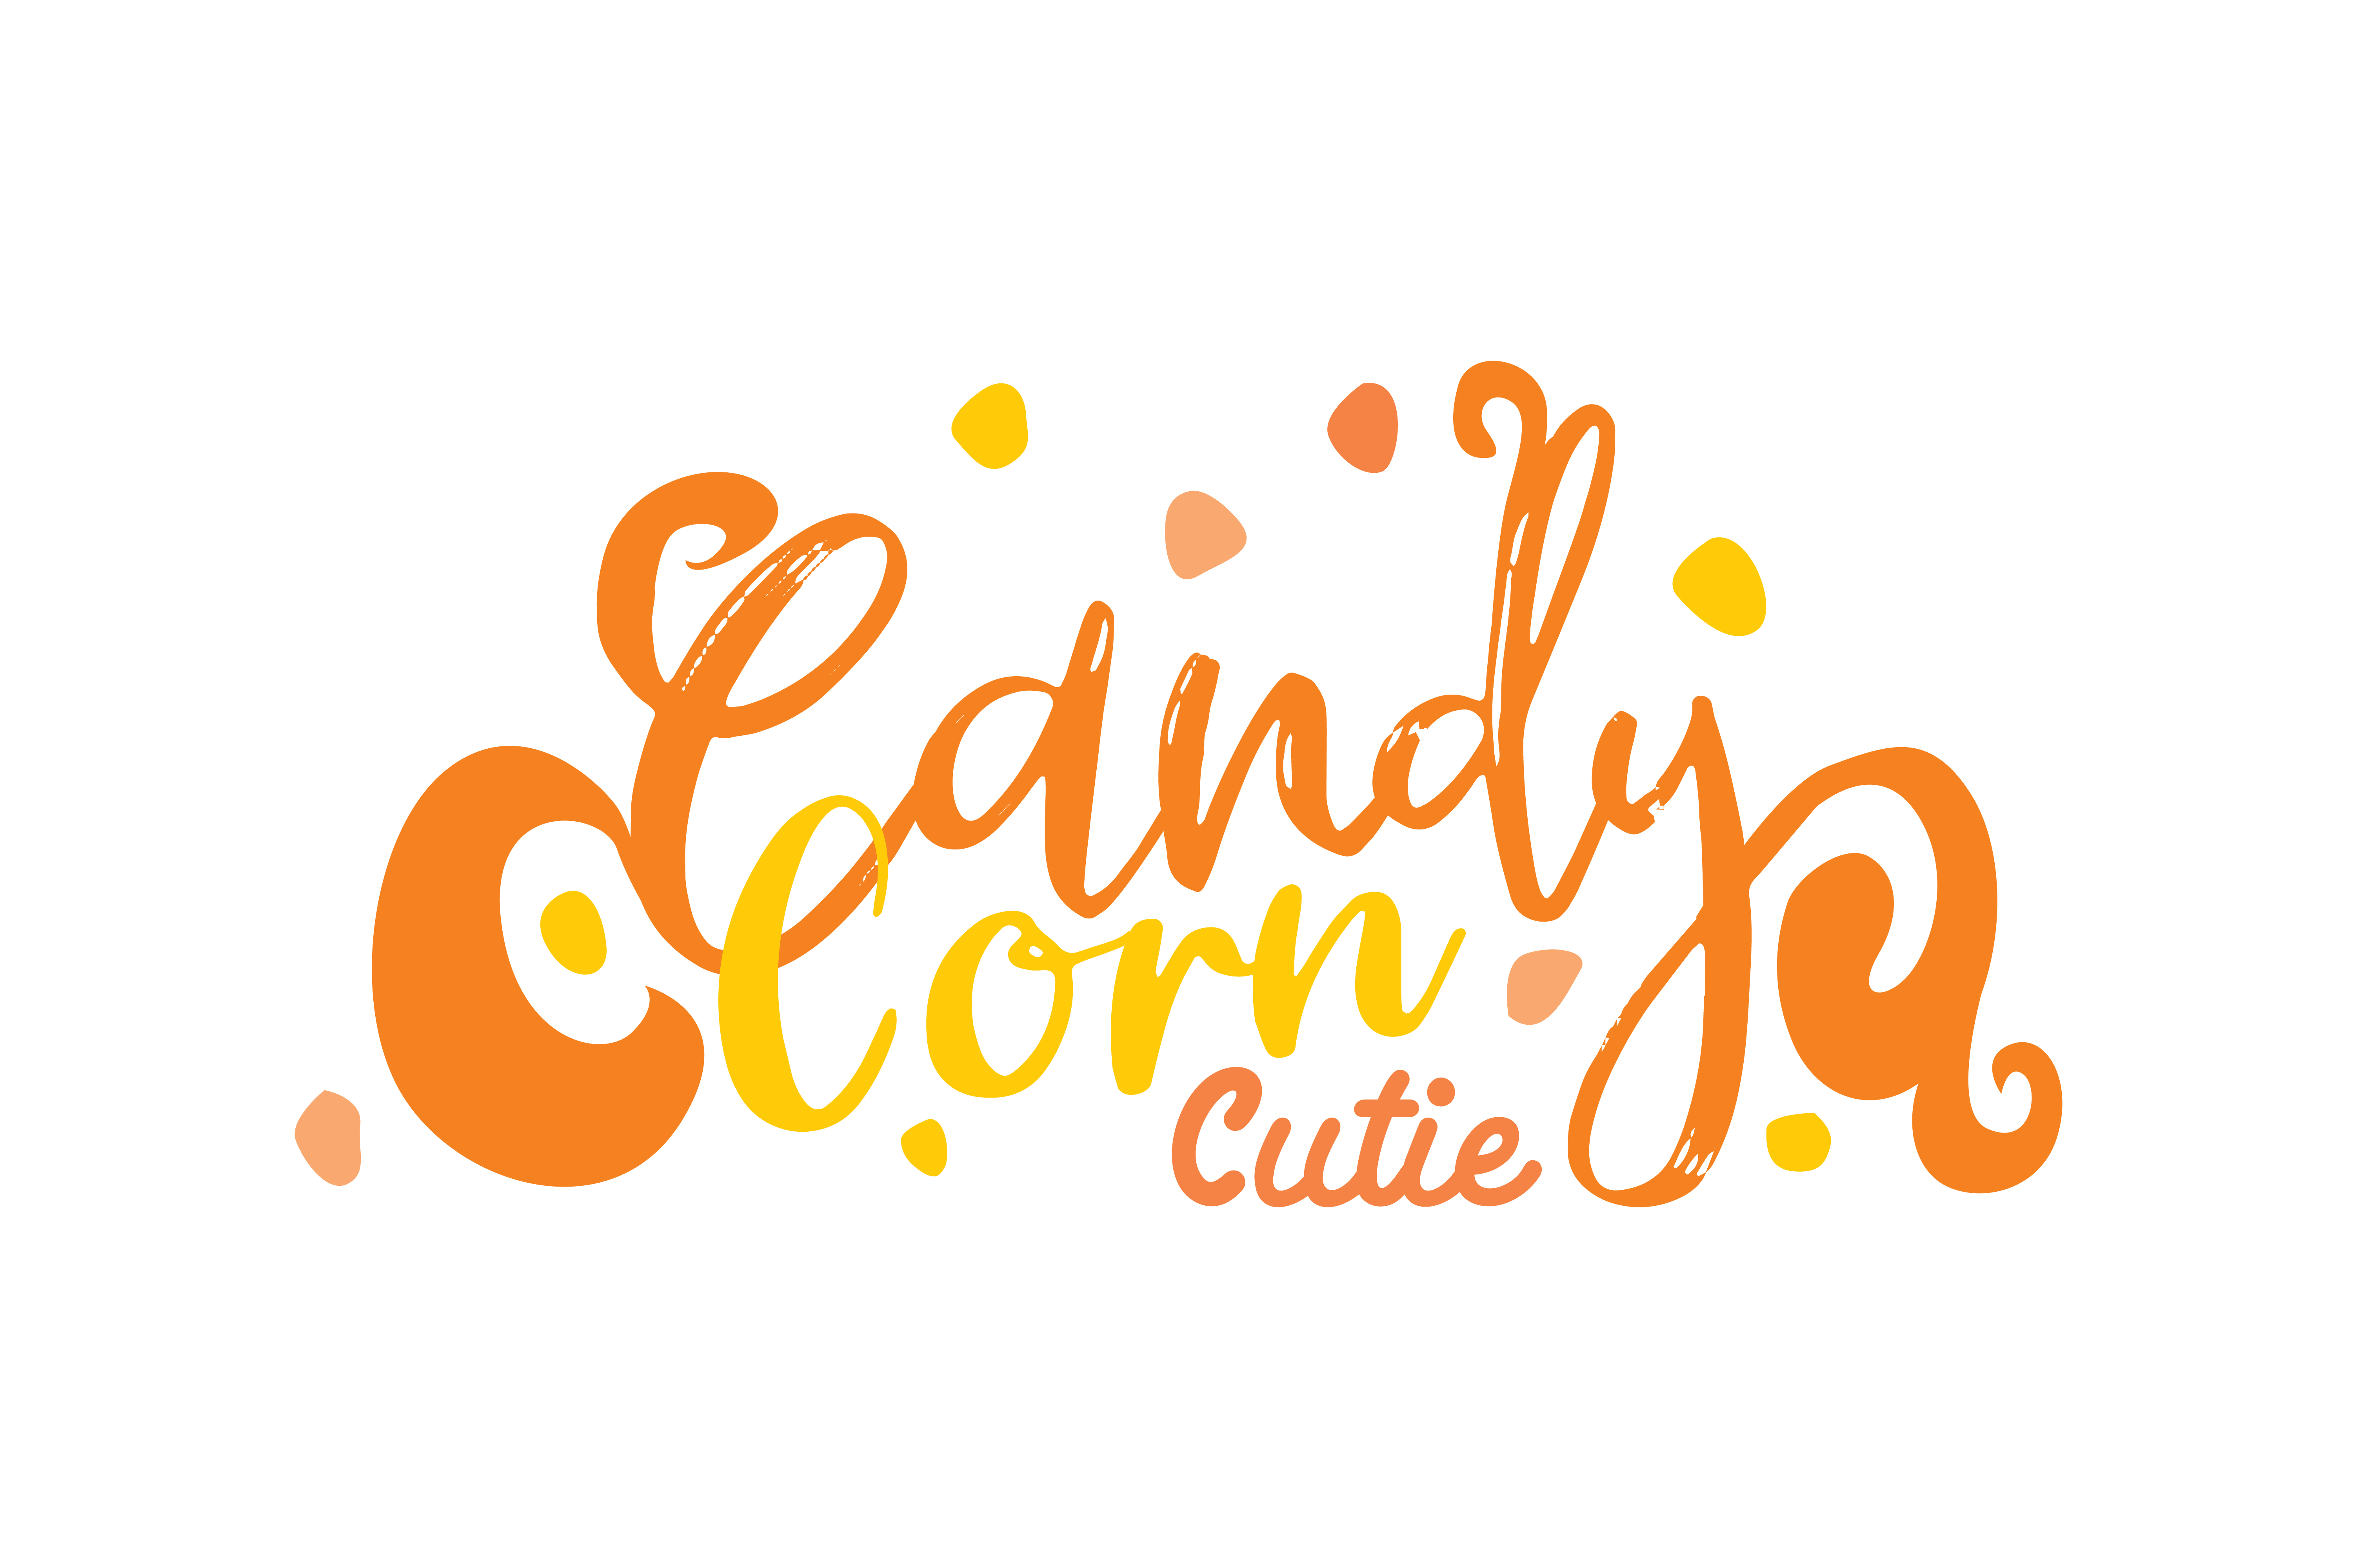 Download Free Candy Corn Cutie Graphic By Thelucky Creative Fabrica for Cricut Explore, Silhouette and other cutting machines.